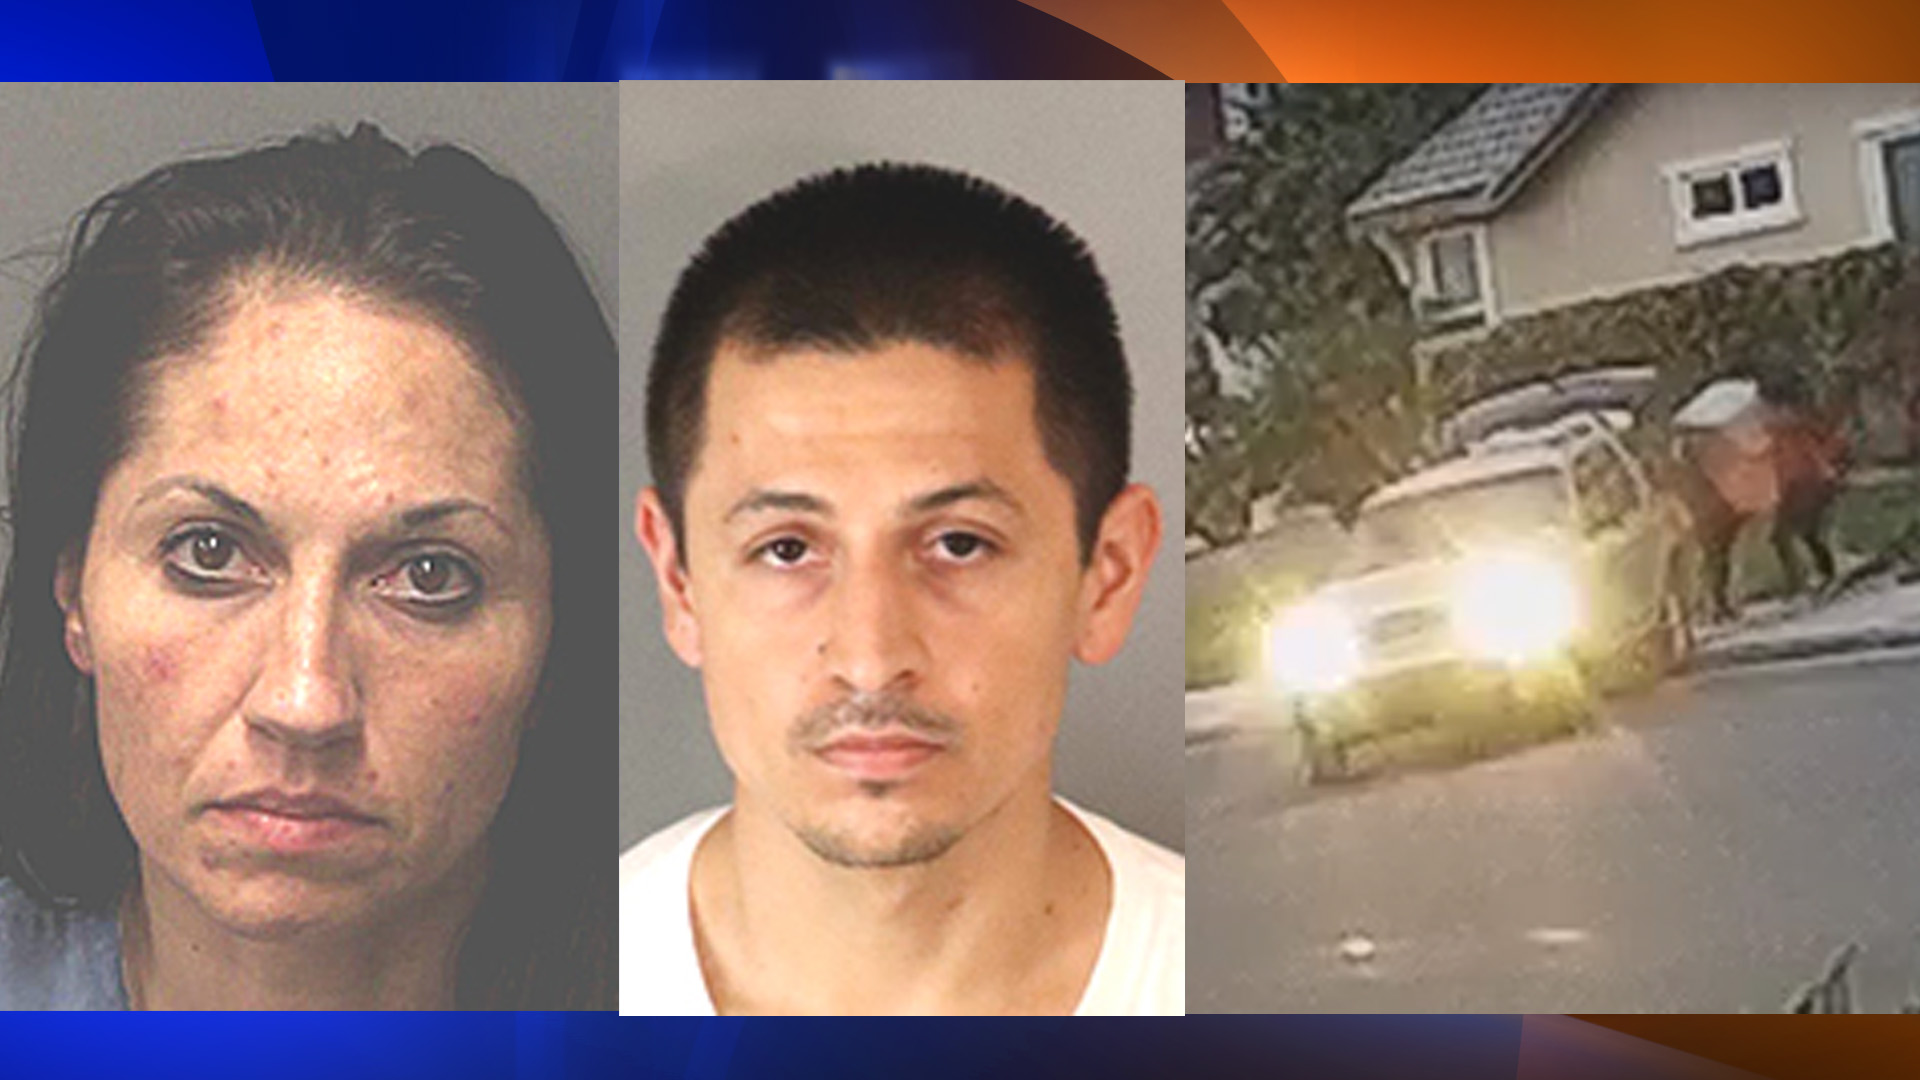 Nadia Gomez-Nunez and David Avila are seen in these booking photos on Sept. 10, 2019 from the Riverside County Sheriff's Department.